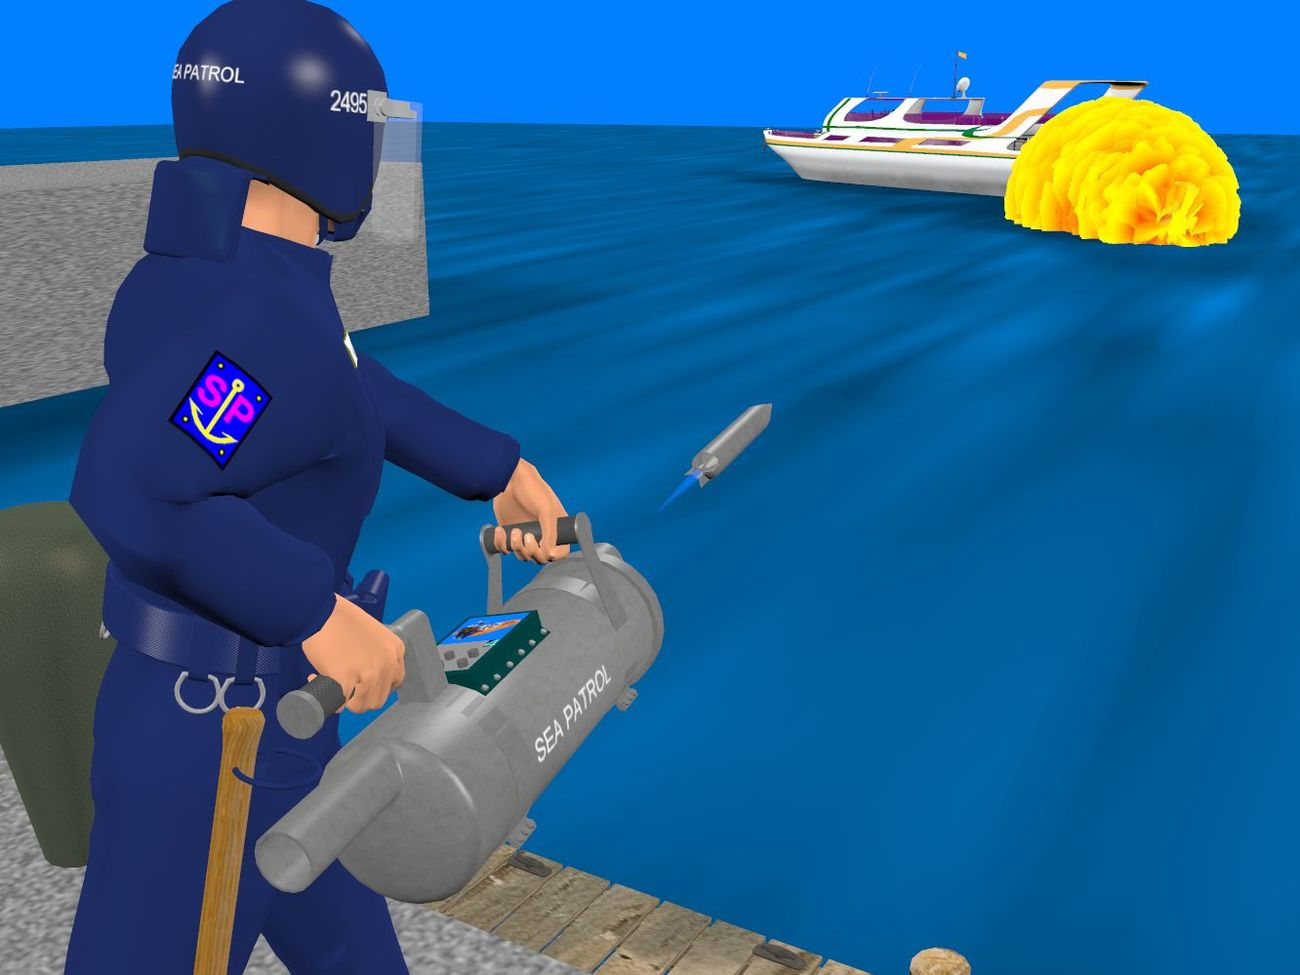 Sea Patrol - new weapon proved